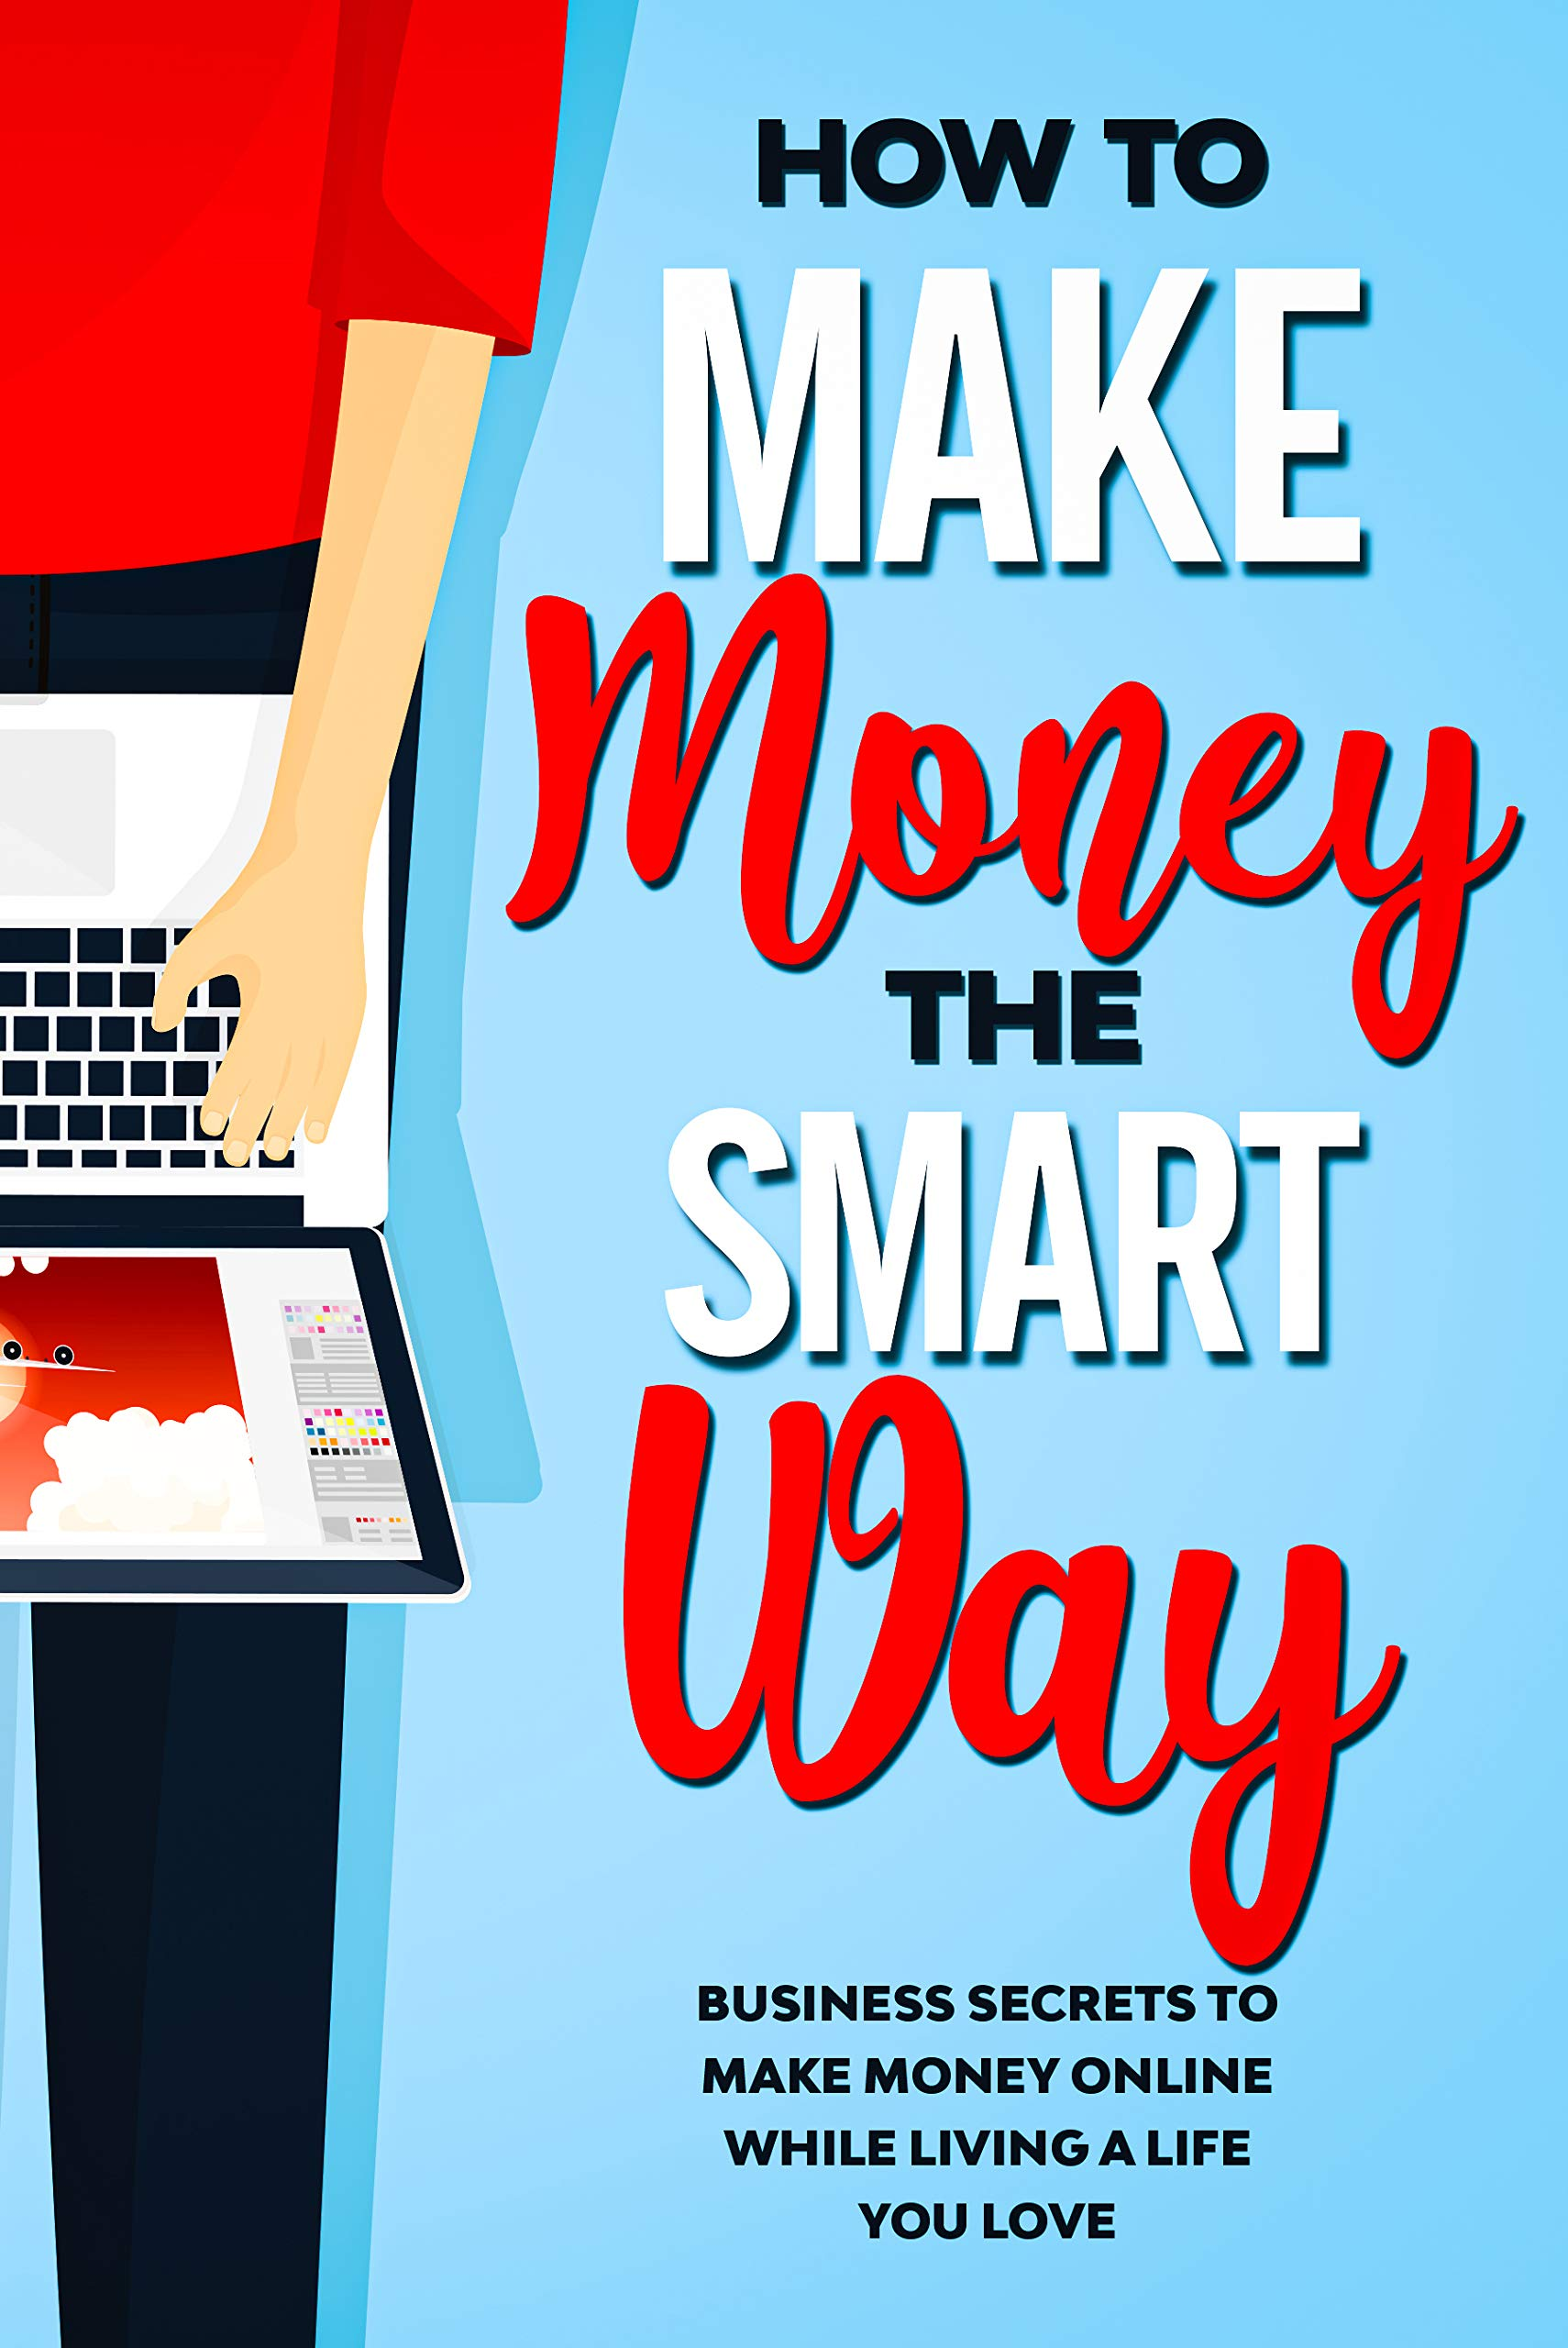 How to Make Money the Smart Way: Business Secrets to Make Money Online While Living a Life You Love